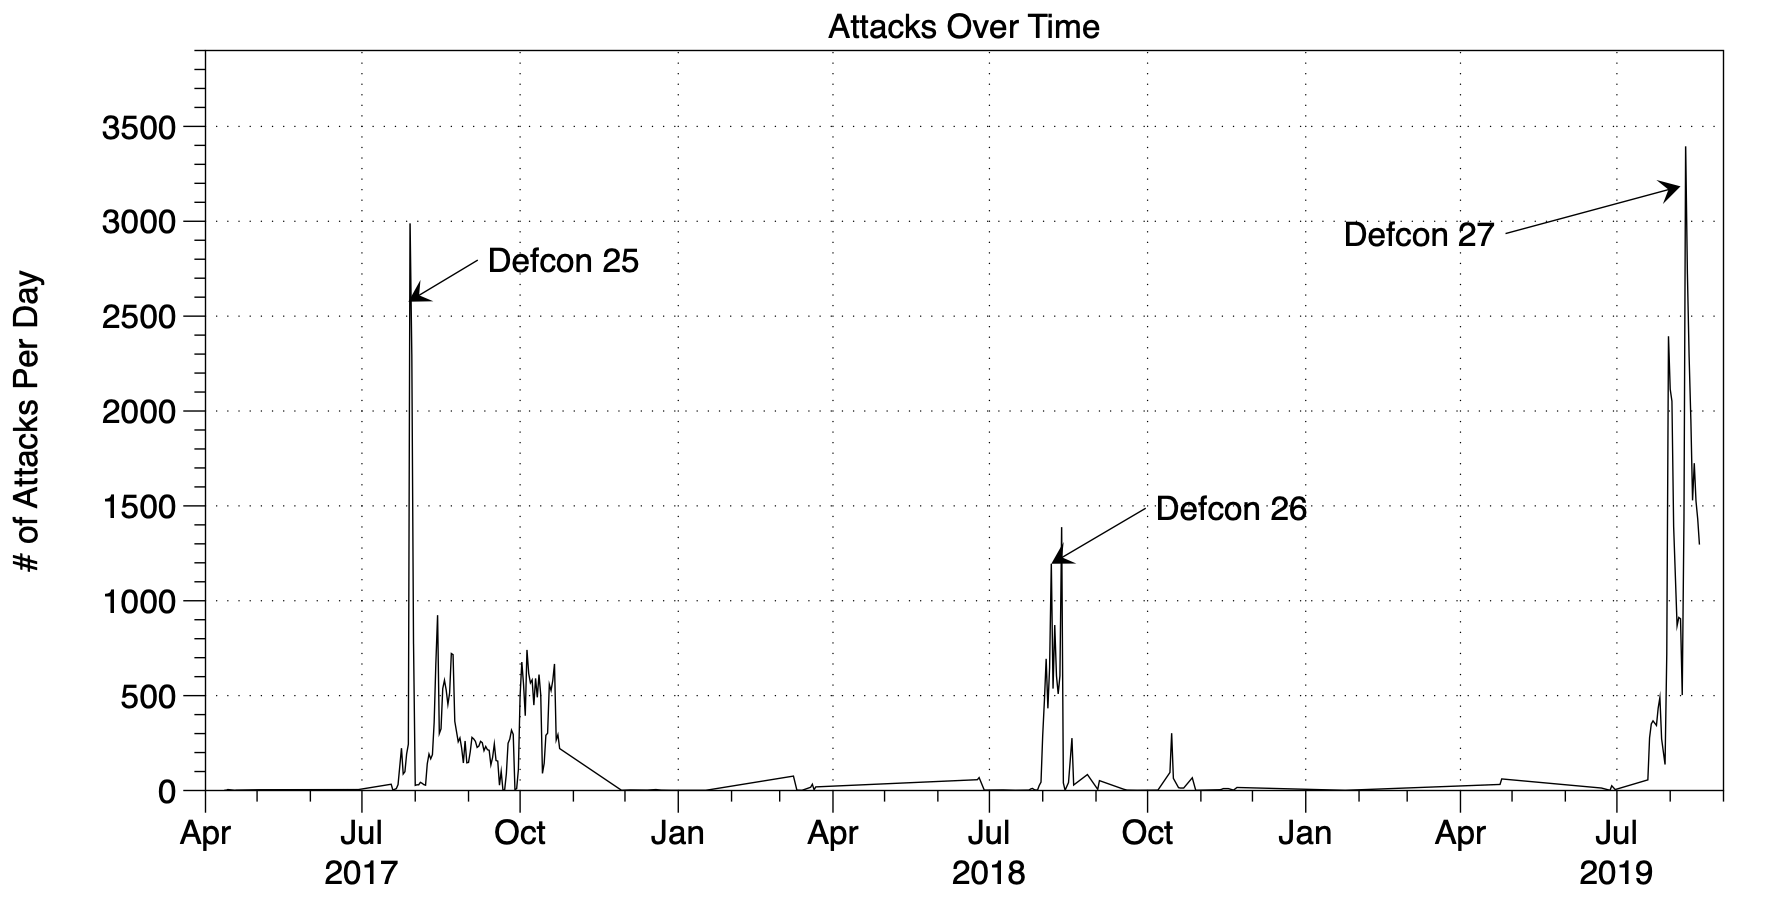 Number-of-Attacks-Per-Day